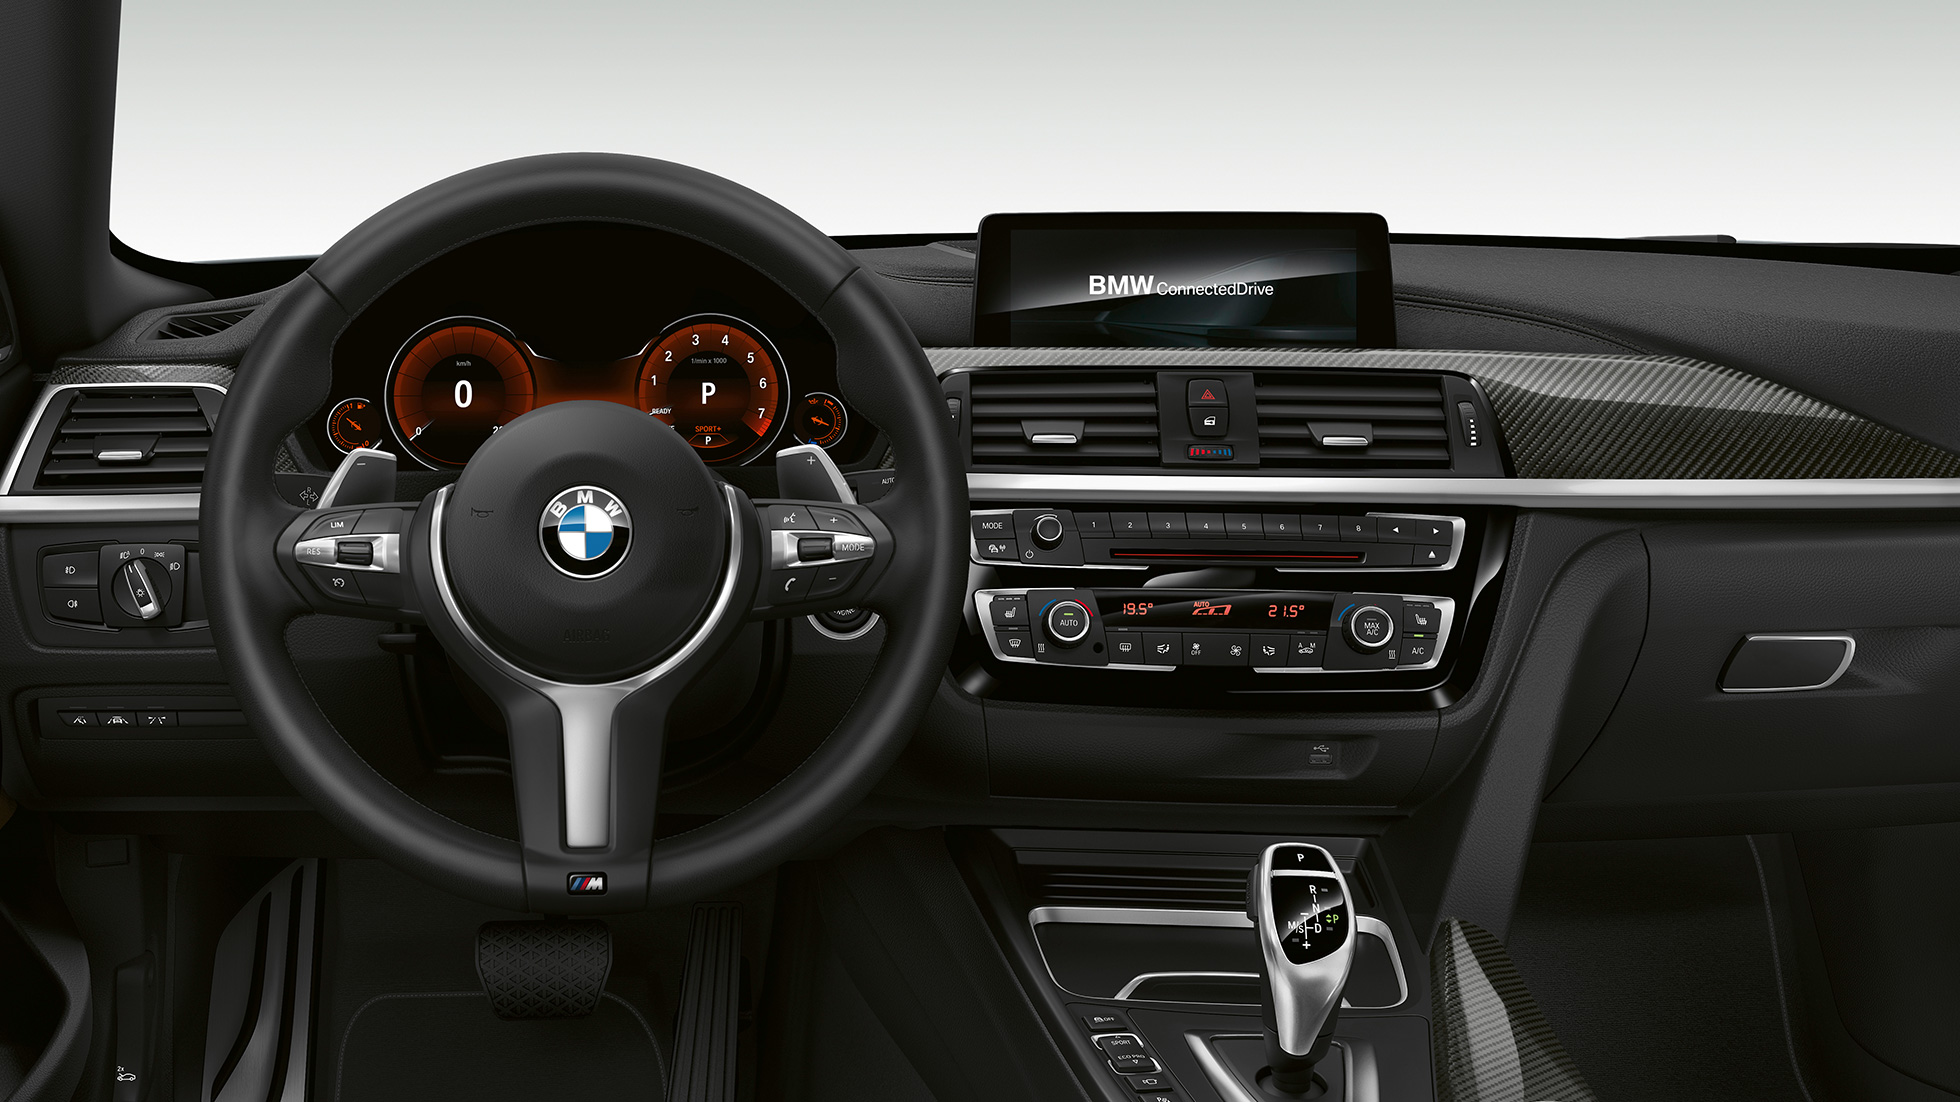 BMW 4 Series Gran Coupé, Model M Sport cockpit F36